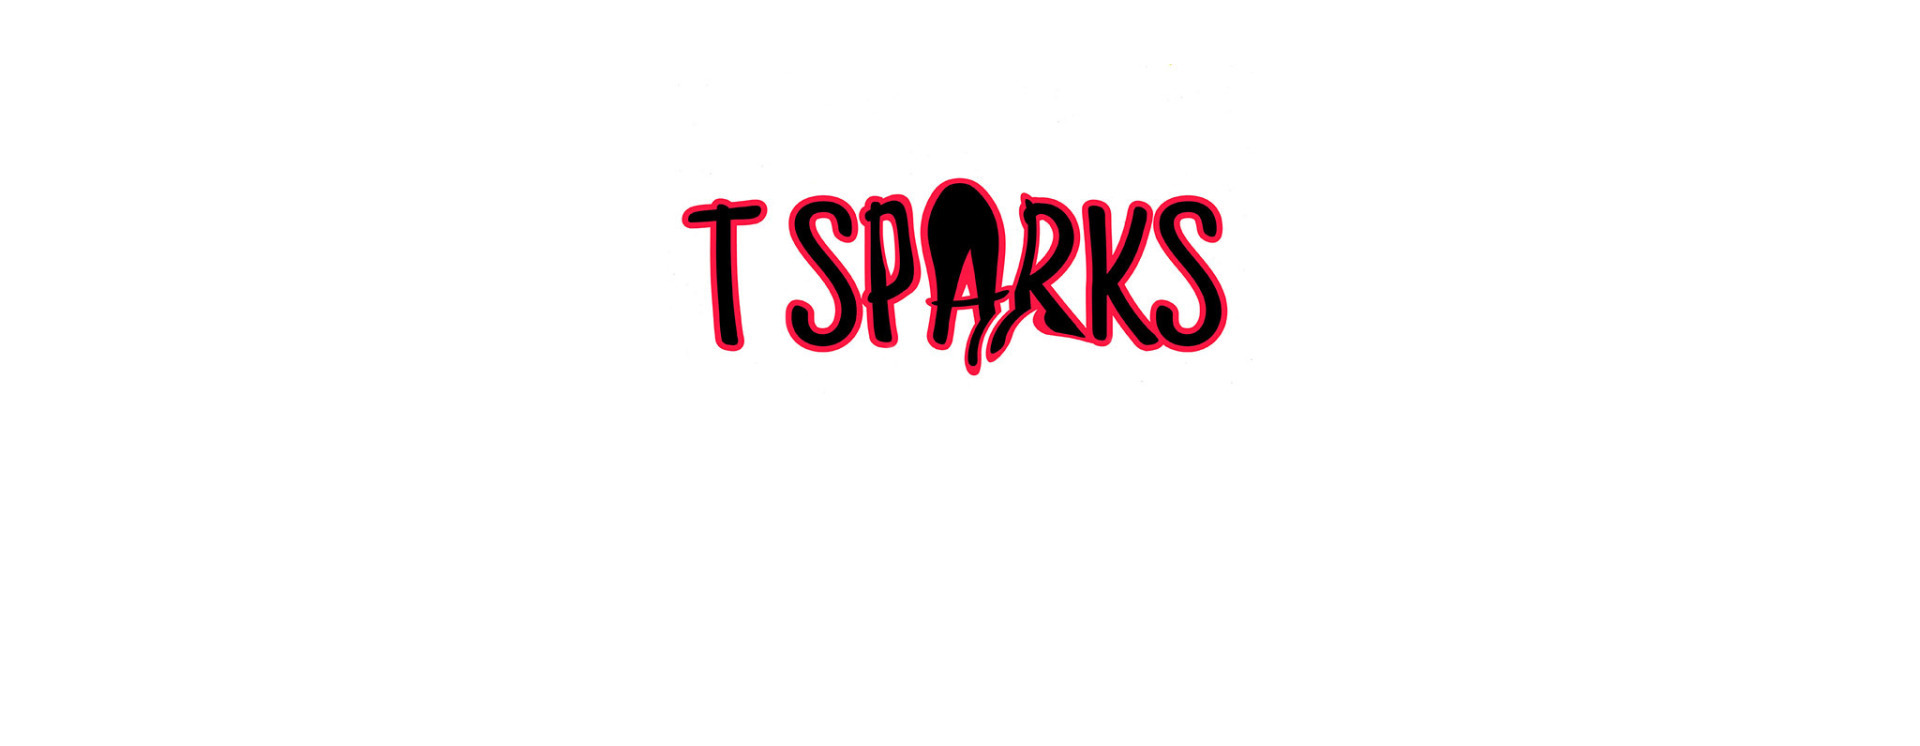 Youtube banner t sparks1 copy